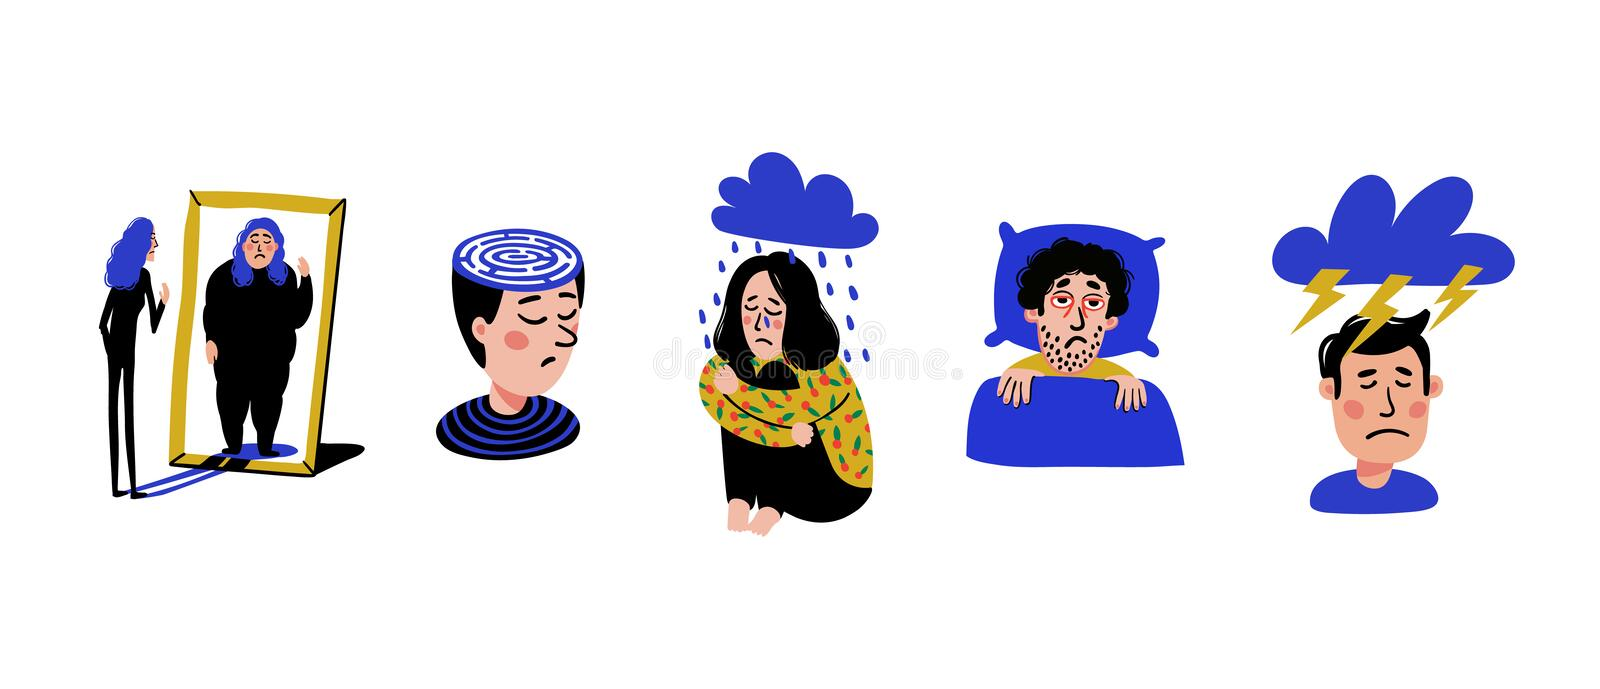 Psycholigy. Set of men and women with psychological problems on white background. Mental disorders, illnesses royalty free illustration